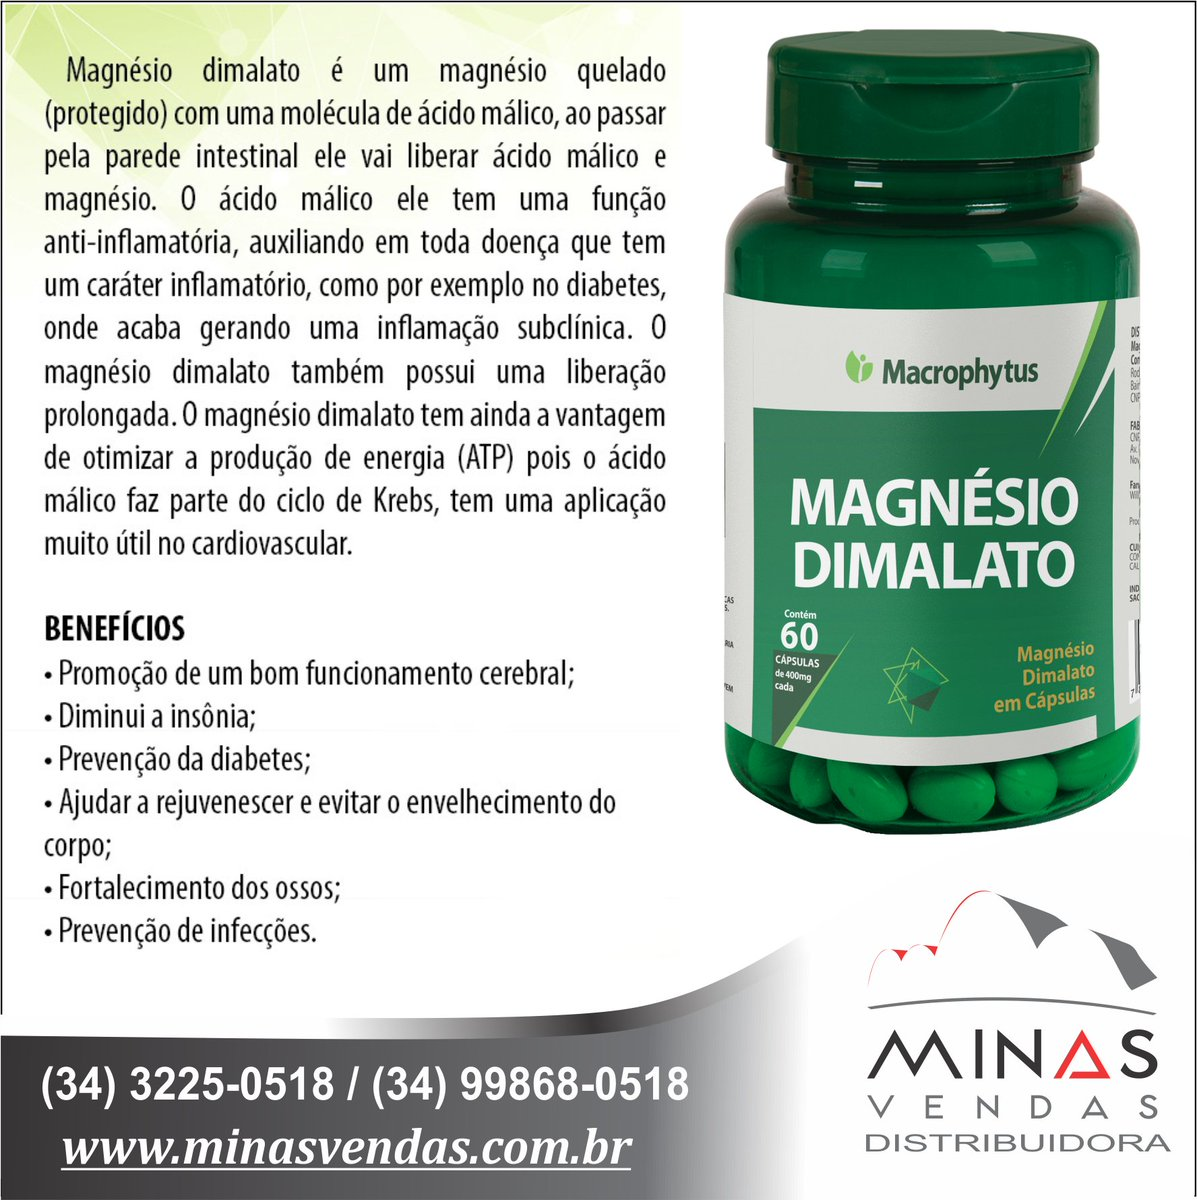 Já conhece os benefícios do uso contínuo do Magnésio Dimalato? Compre agora pelo link abaixo 👉  👈  #minasvendas #like4live #nature #suplementacao #love #happy #summer #repost #instalike #food #girls #followforfollow #treino #lojavirtual